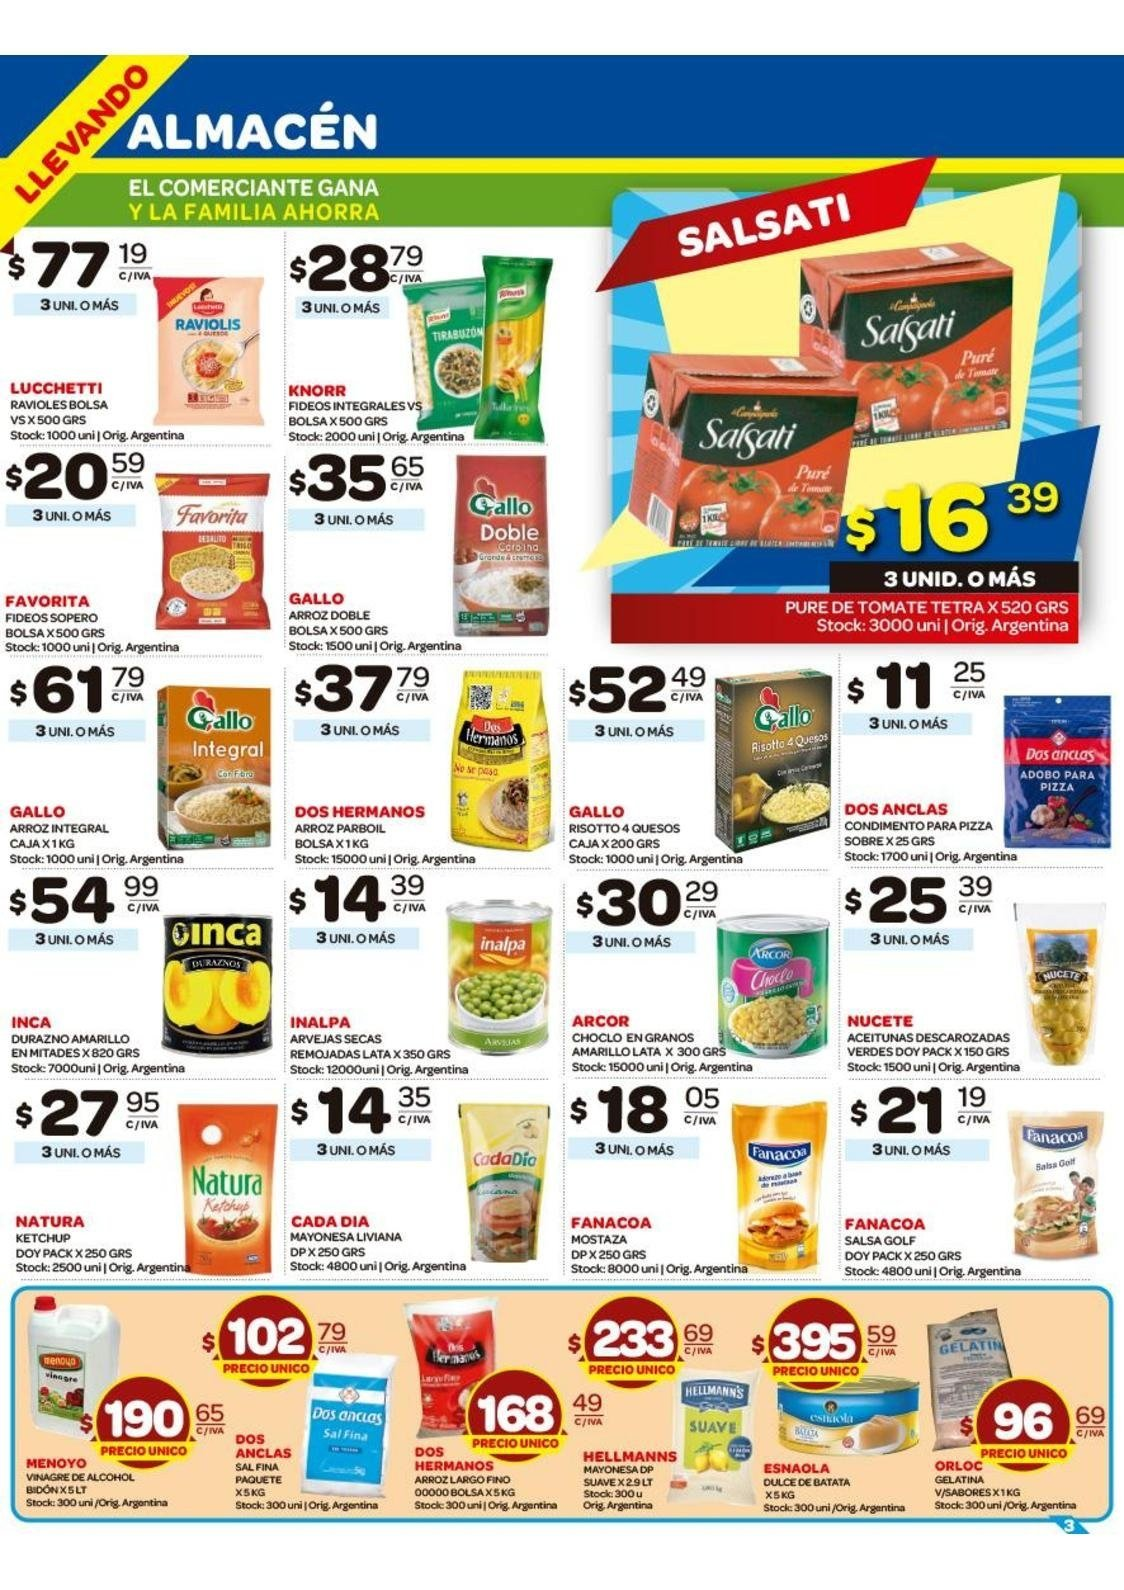 Folleto actual Carrefour - 31.12.2018 - 6.1.2019 - Ventas - tomate e0e55e70a858